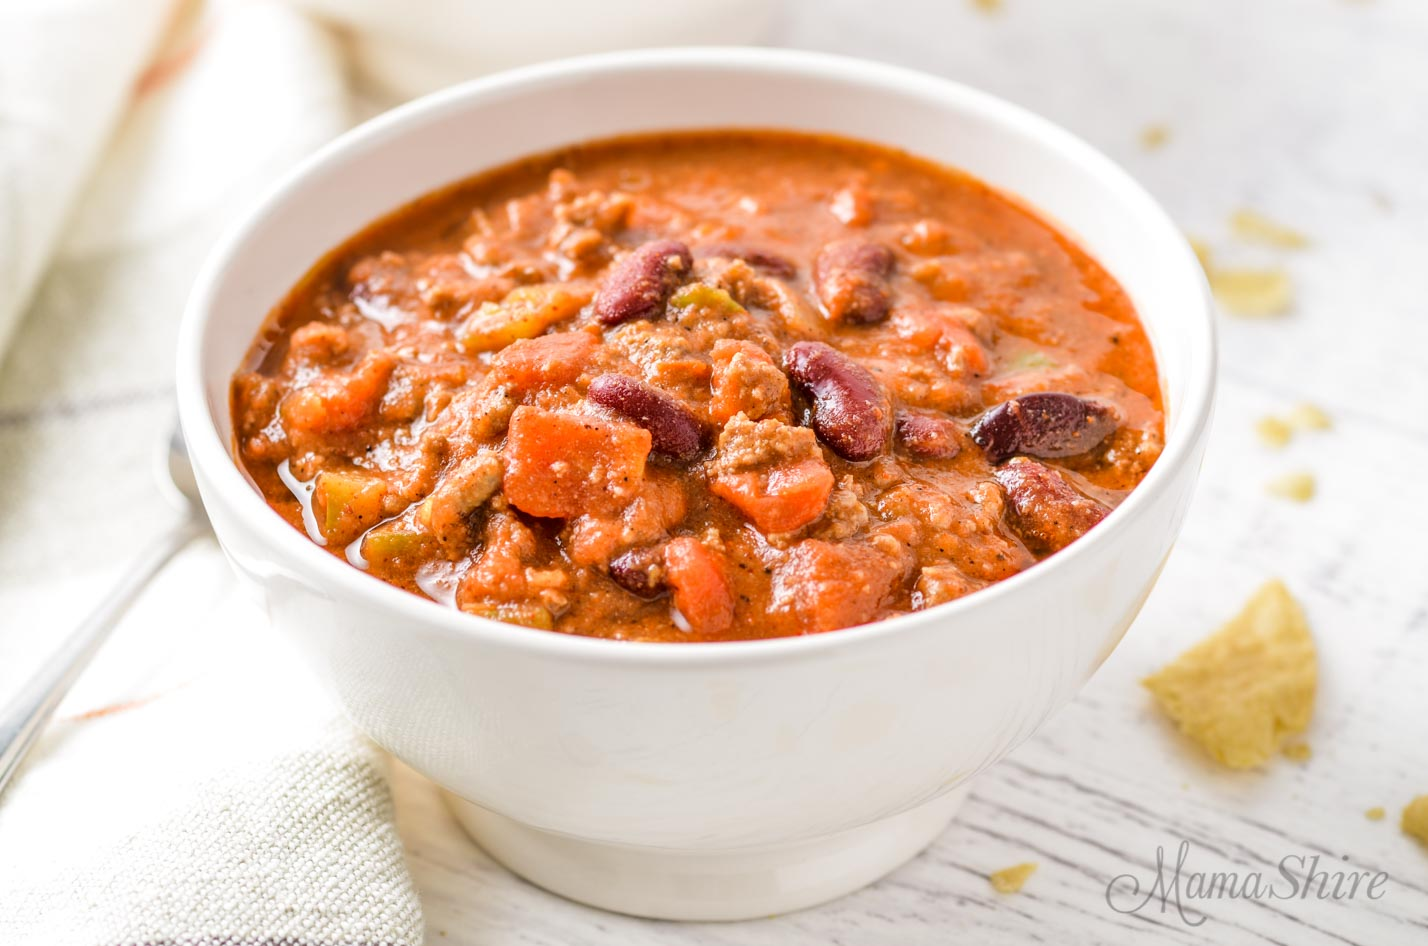 A white bowl full of gluten-free chili.